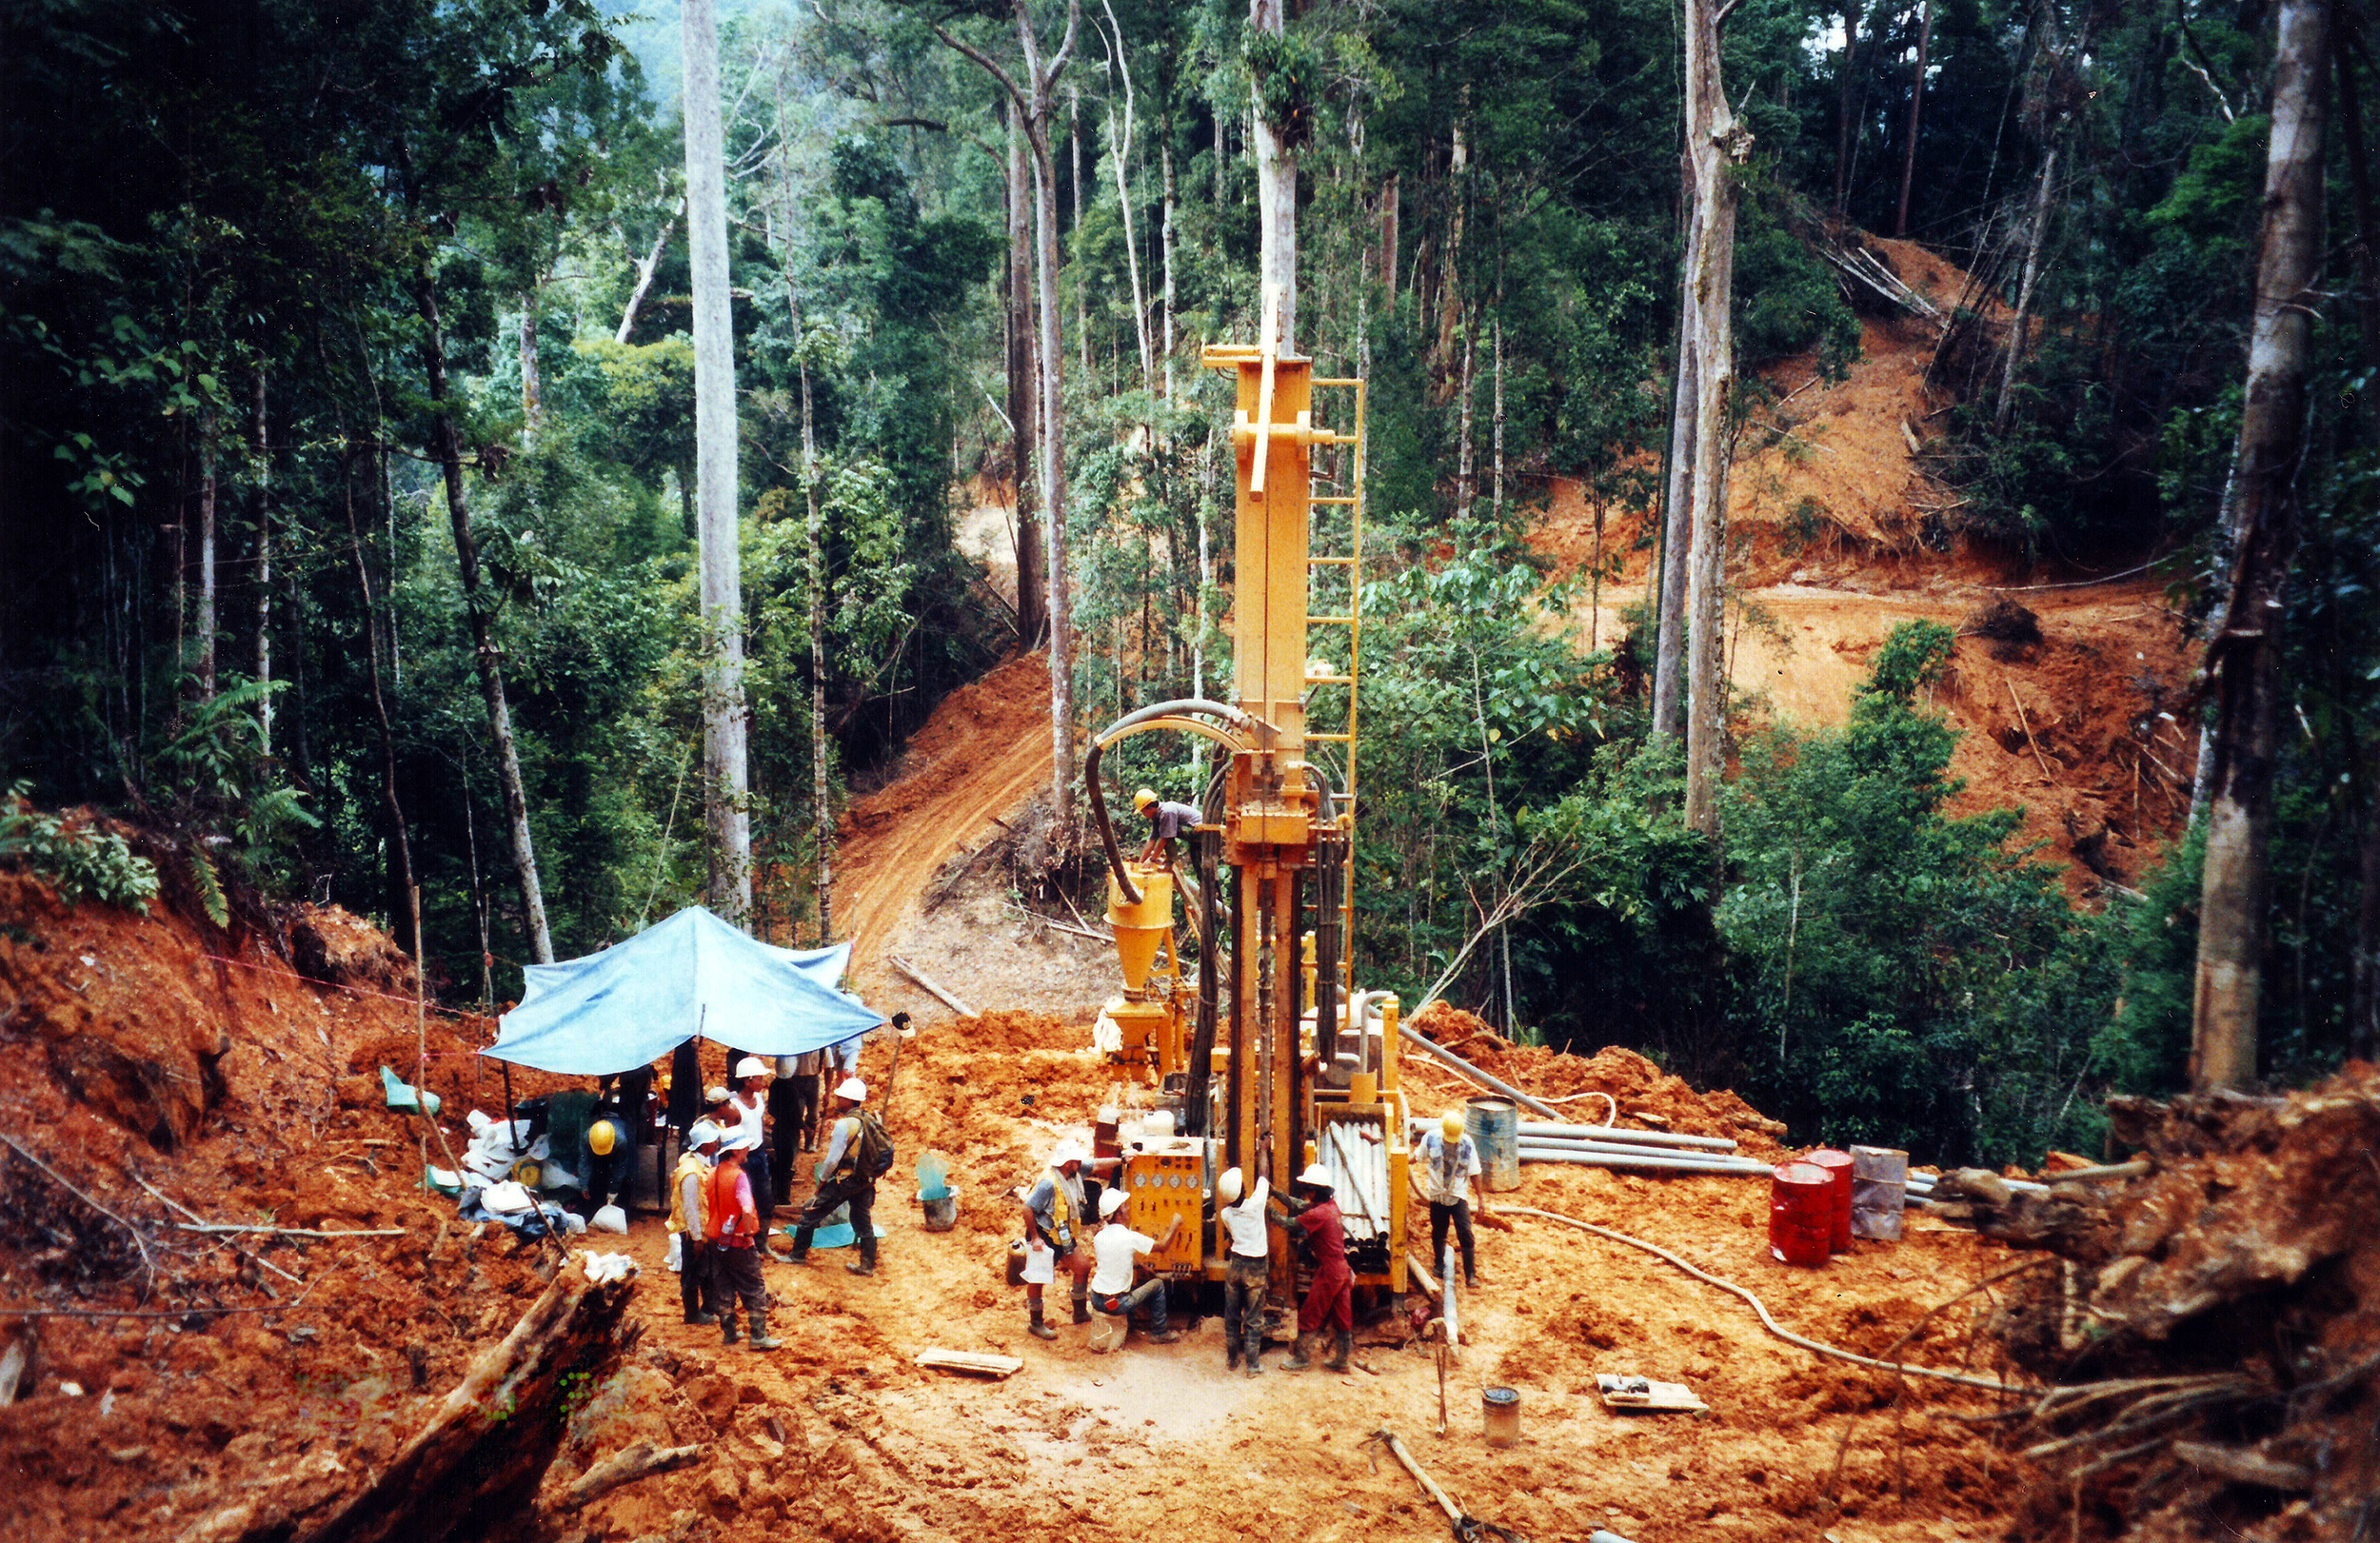 A drilling rig extracting drillcore to evaluate the economics of developing a potential gold mine deep in the Borneo jungle of Indonesia. (Getty Images)